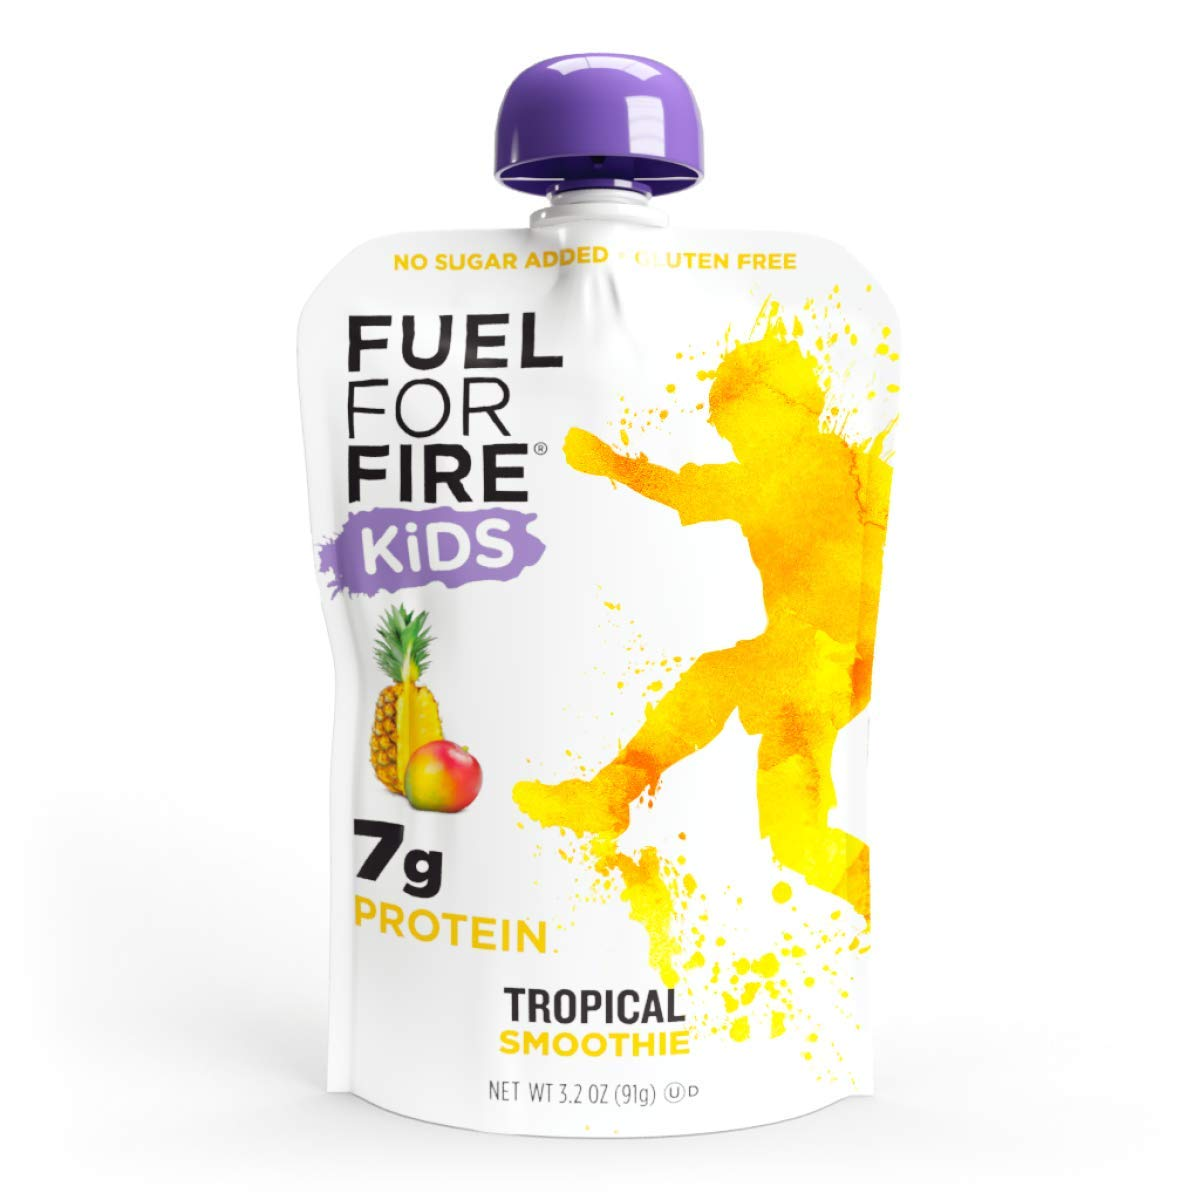 Fuel For Fire KIDS! Tropical (12 Pack) Real Fruit & Protein Smoothie Squeeze Pouch | Nutritionist Approved, Peanut Free, Ready to Eat Snack | Gluten Free, Soy Free | Less sugar than most applesauce